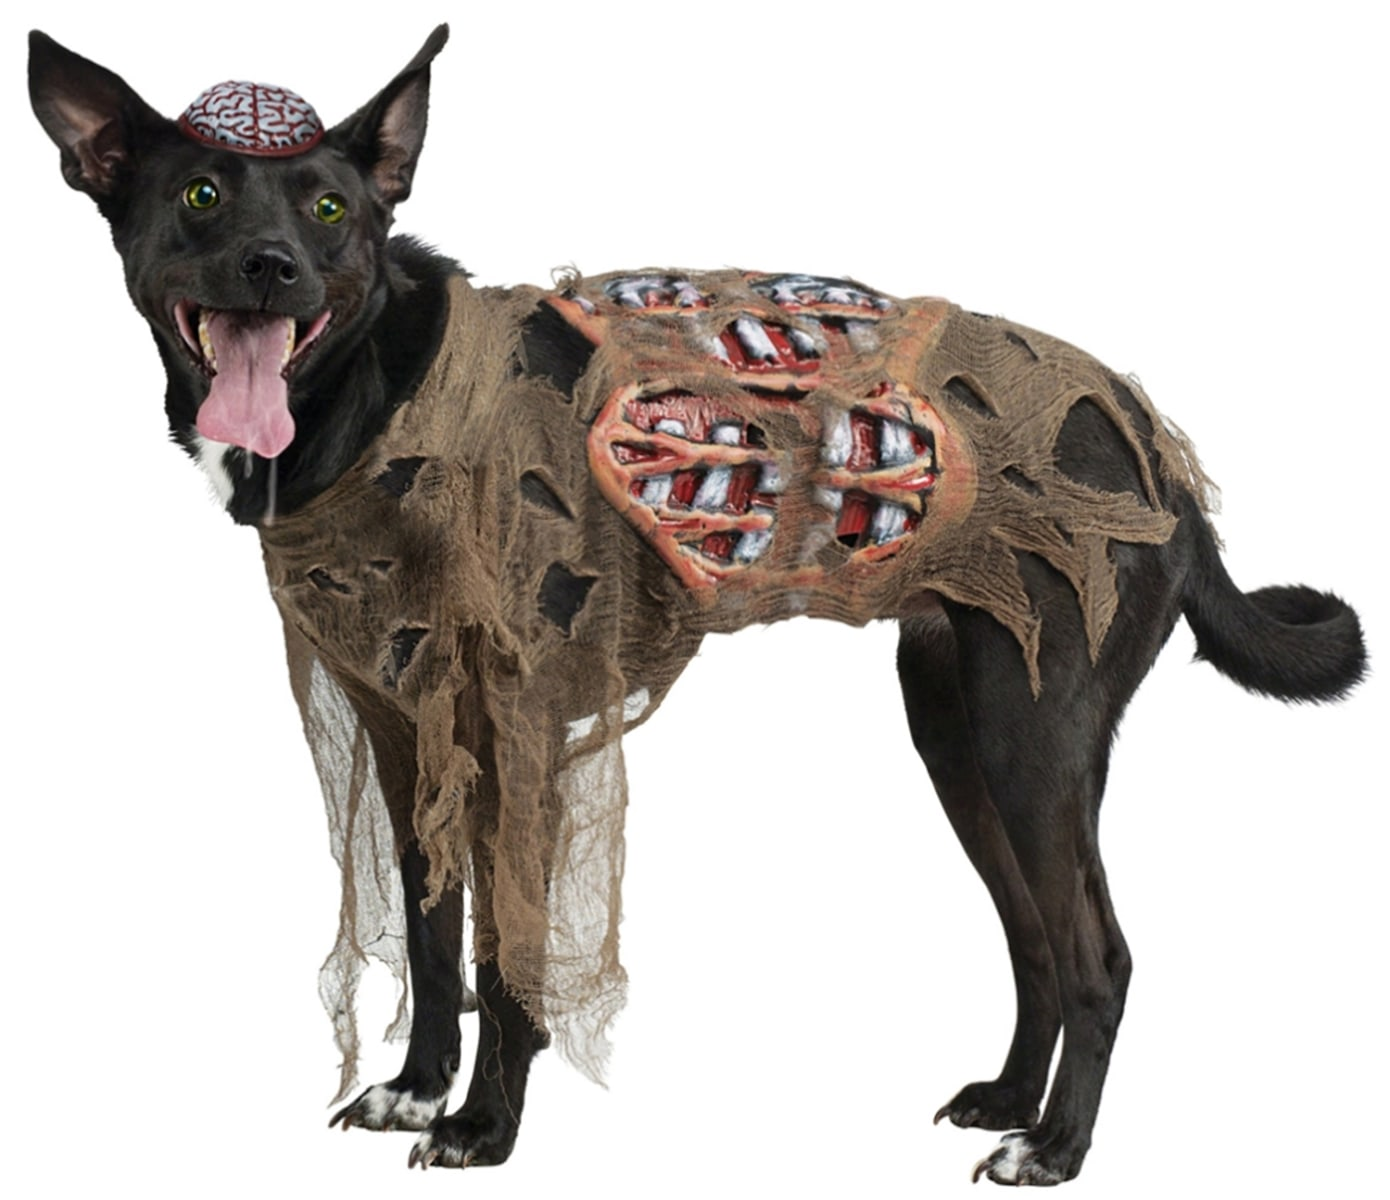 27 of the funniest pet halloween costumes - Halloween Costume For Small Dogs